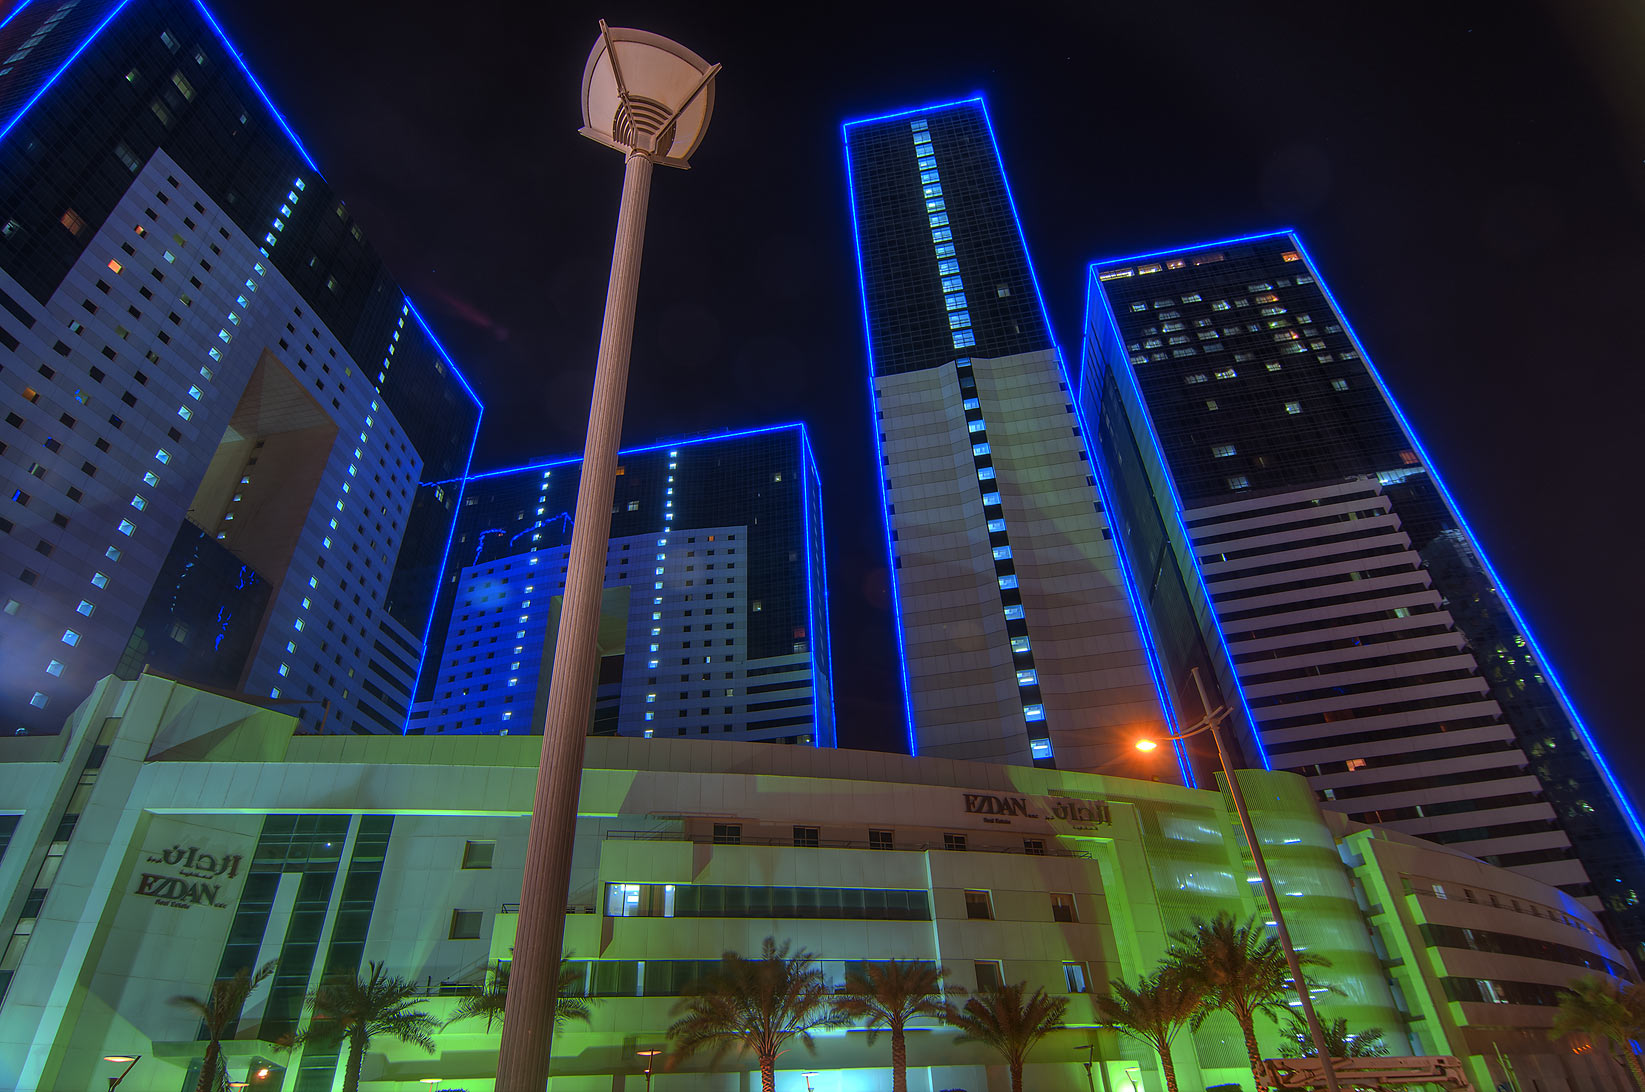 Corniche and West Bay in Doha, Qatar  - Ezdan Hotel in West Bay. Doha, Qatar